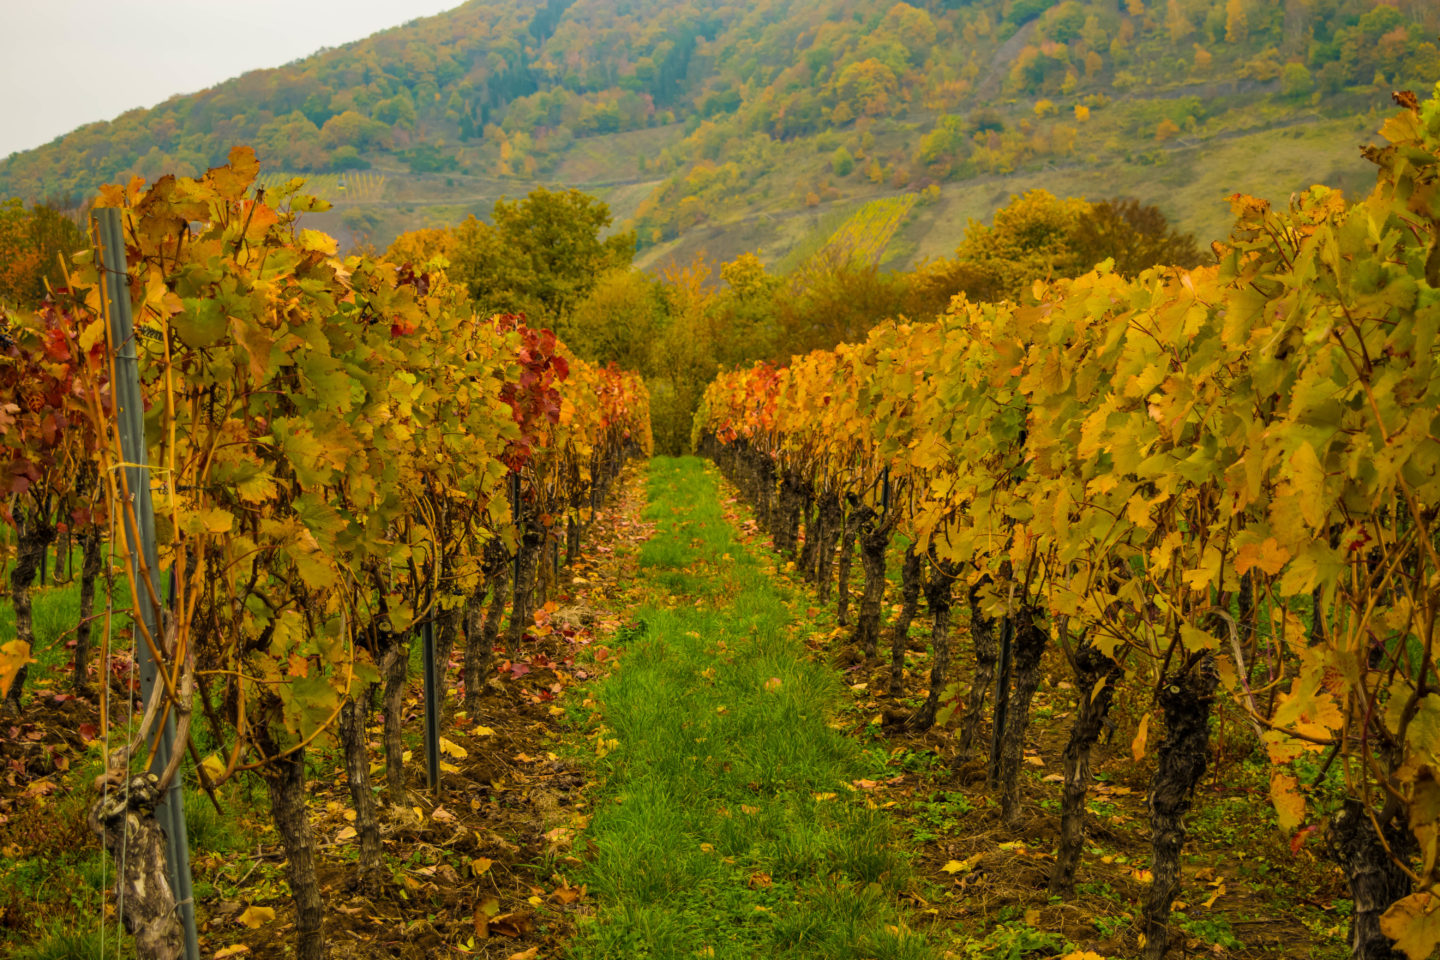 Incredible colours of the grape vines in autumn.